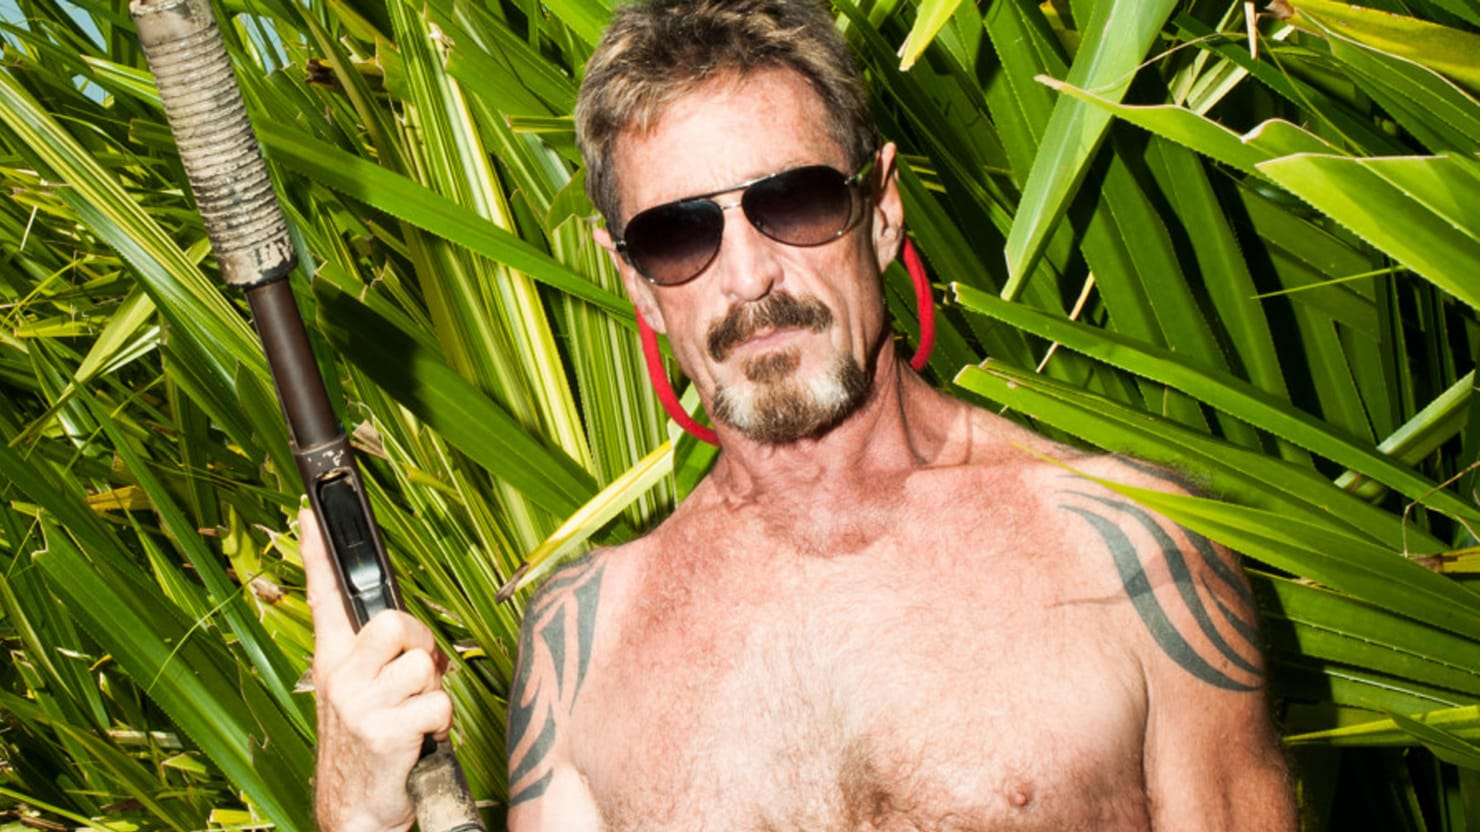 John McAfee Accused of Rape and Murder in Explosive New Doc